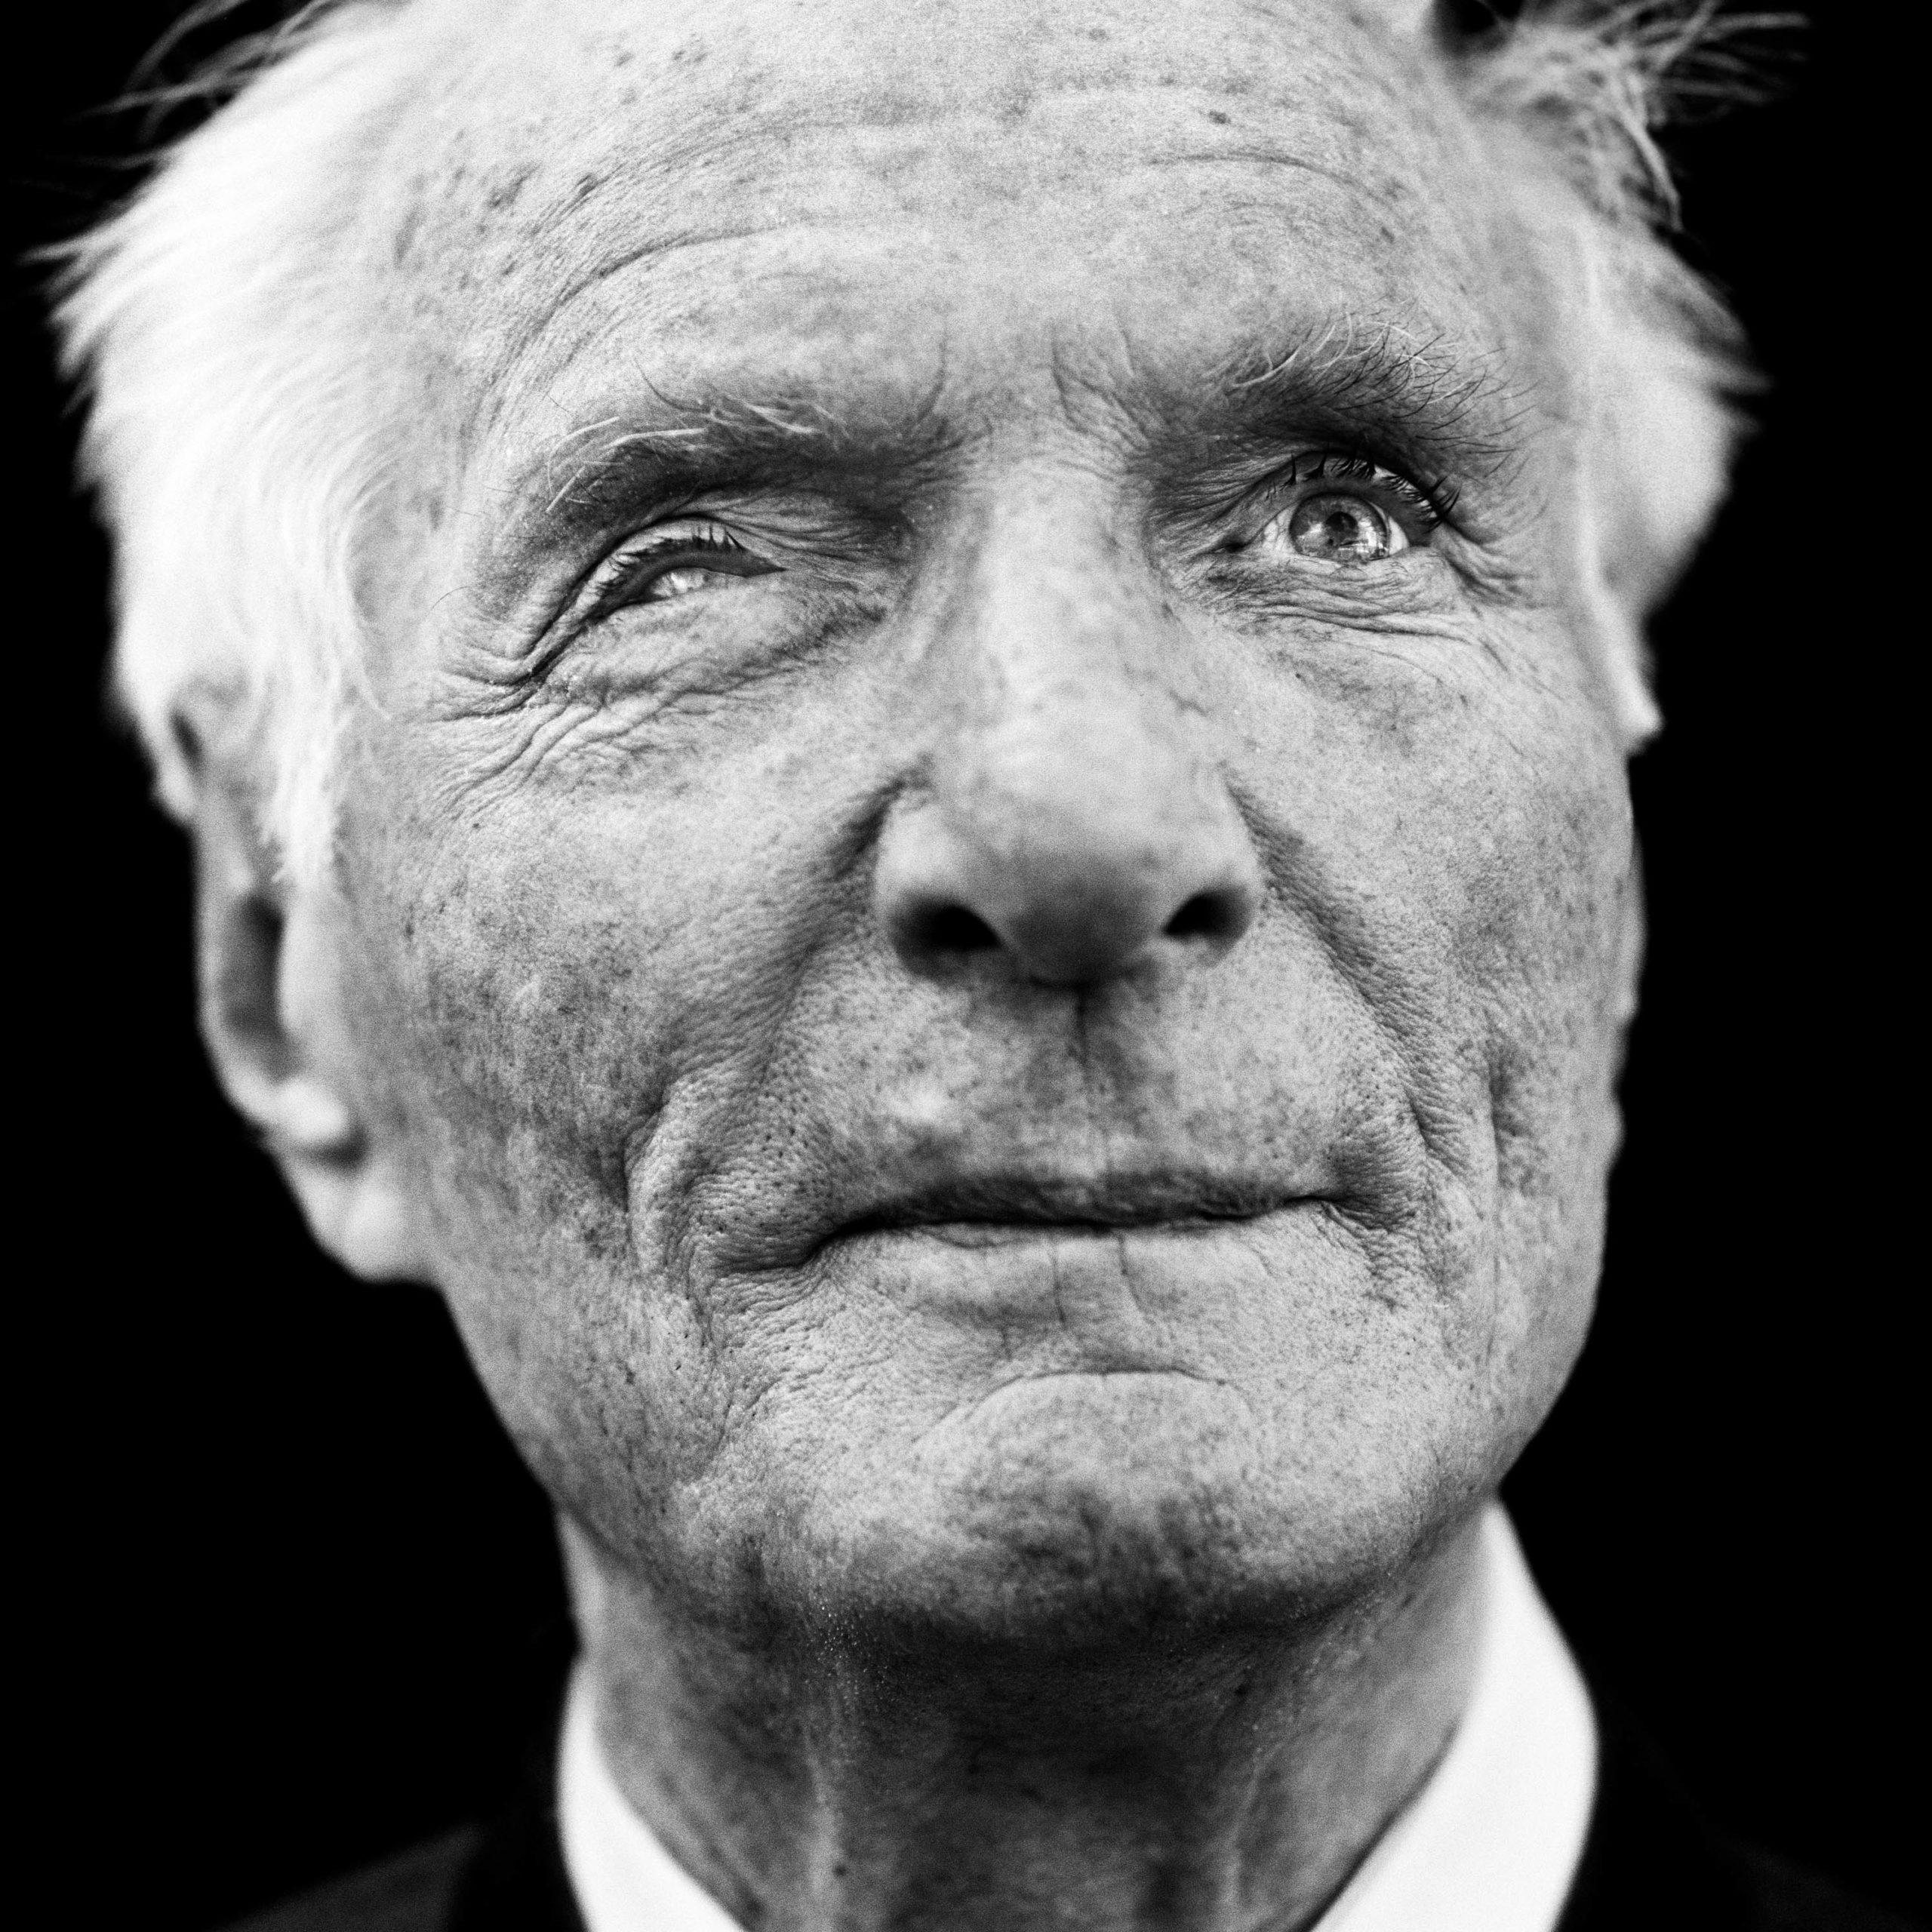 """Rudolf Söder (Germany, 1924). Interview outtake: """"In 1994 I returned to the Crimea with my wife. all those images came back to me. (…) Then I was twenty, I was looking at the sea and thinking, """"what am I doing here? This country doesn't belong to us, does it?"""" I just wanted to swim away."""""""